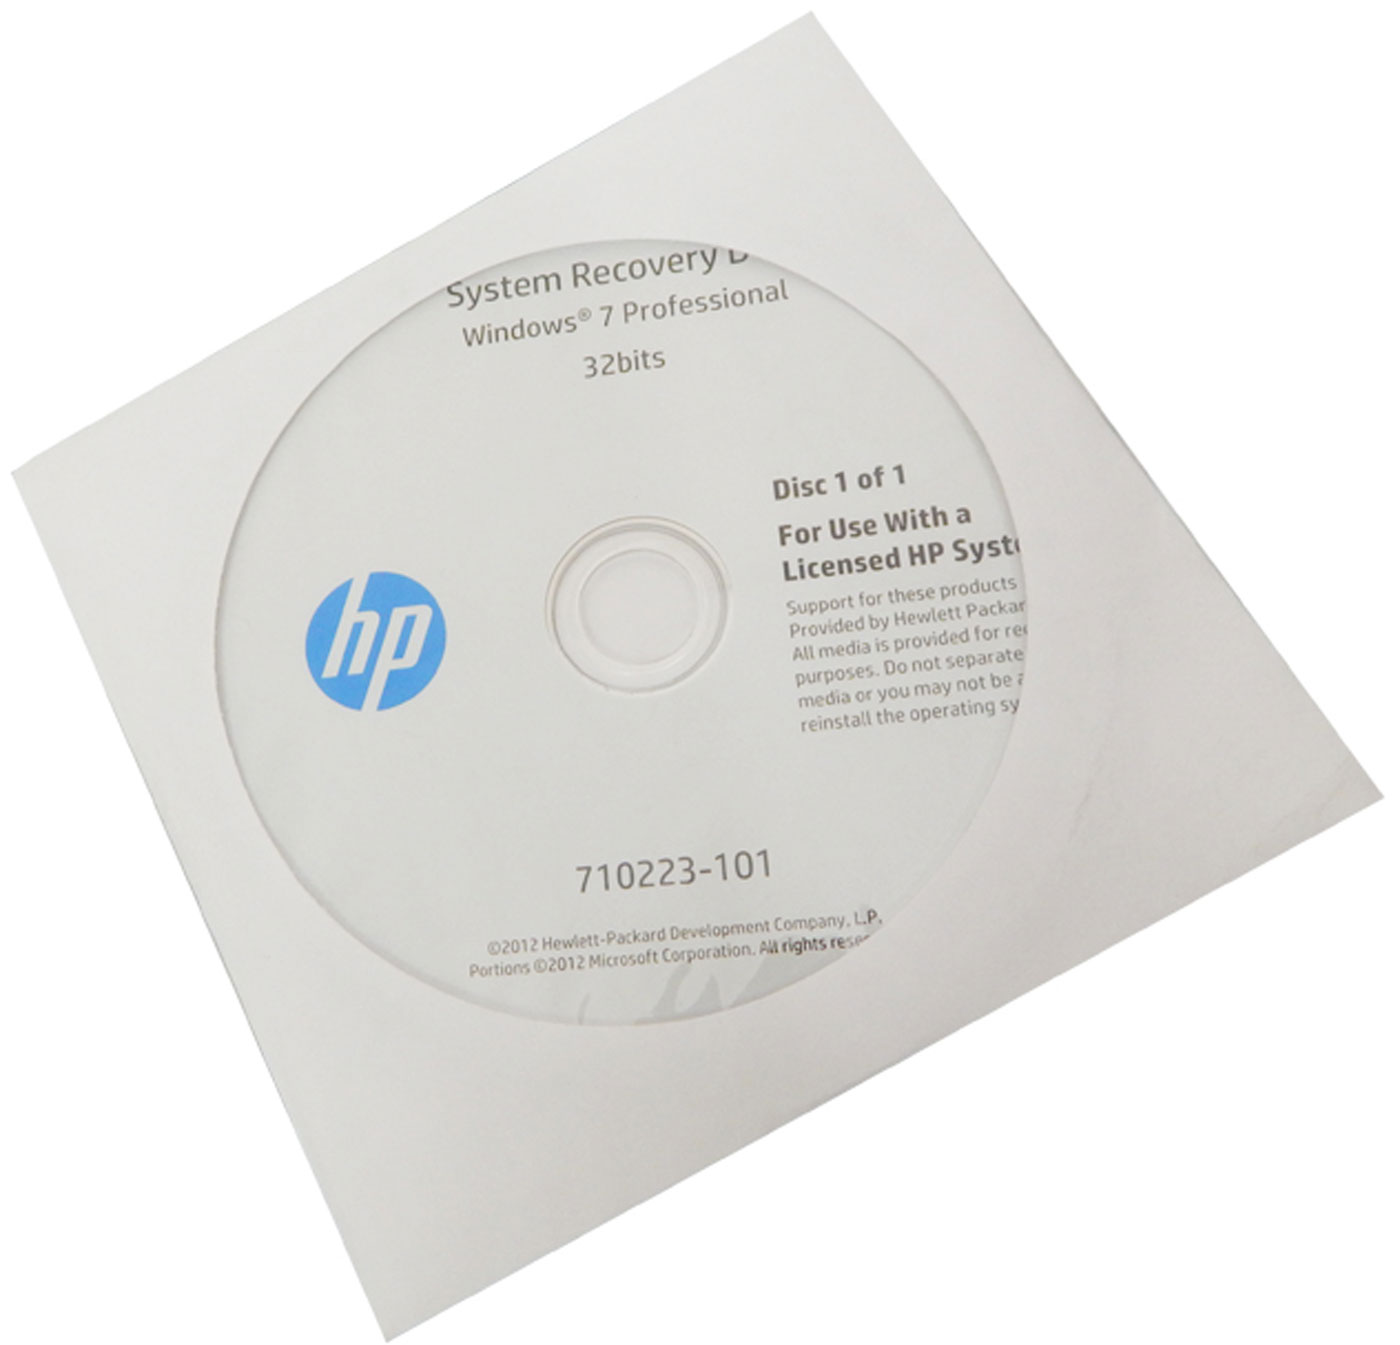 hp g5000 recovery cd